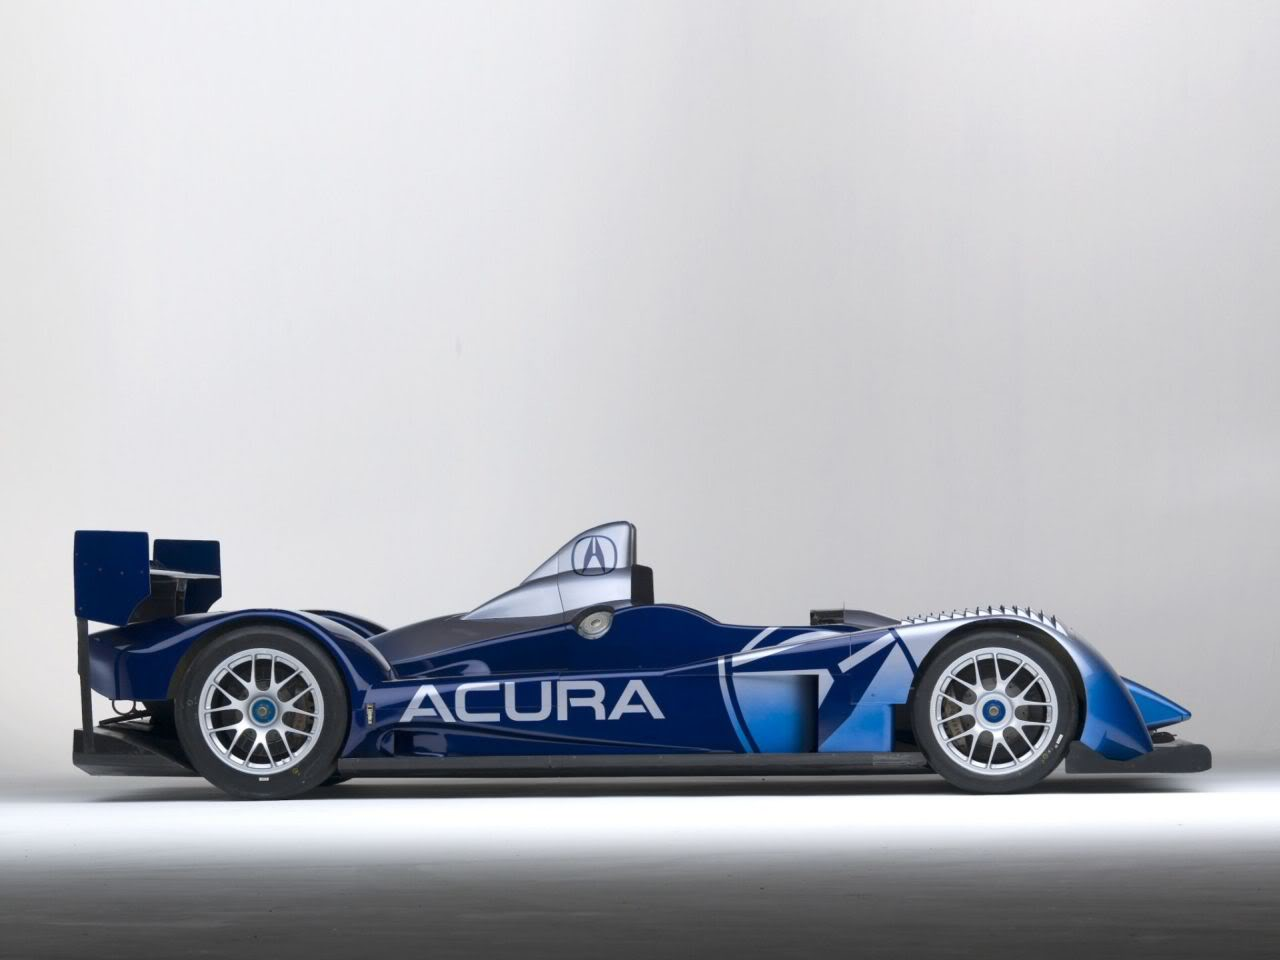 VEHICLES ACURA 2006 ACURA AMS RACE CAR CONCEPT 6